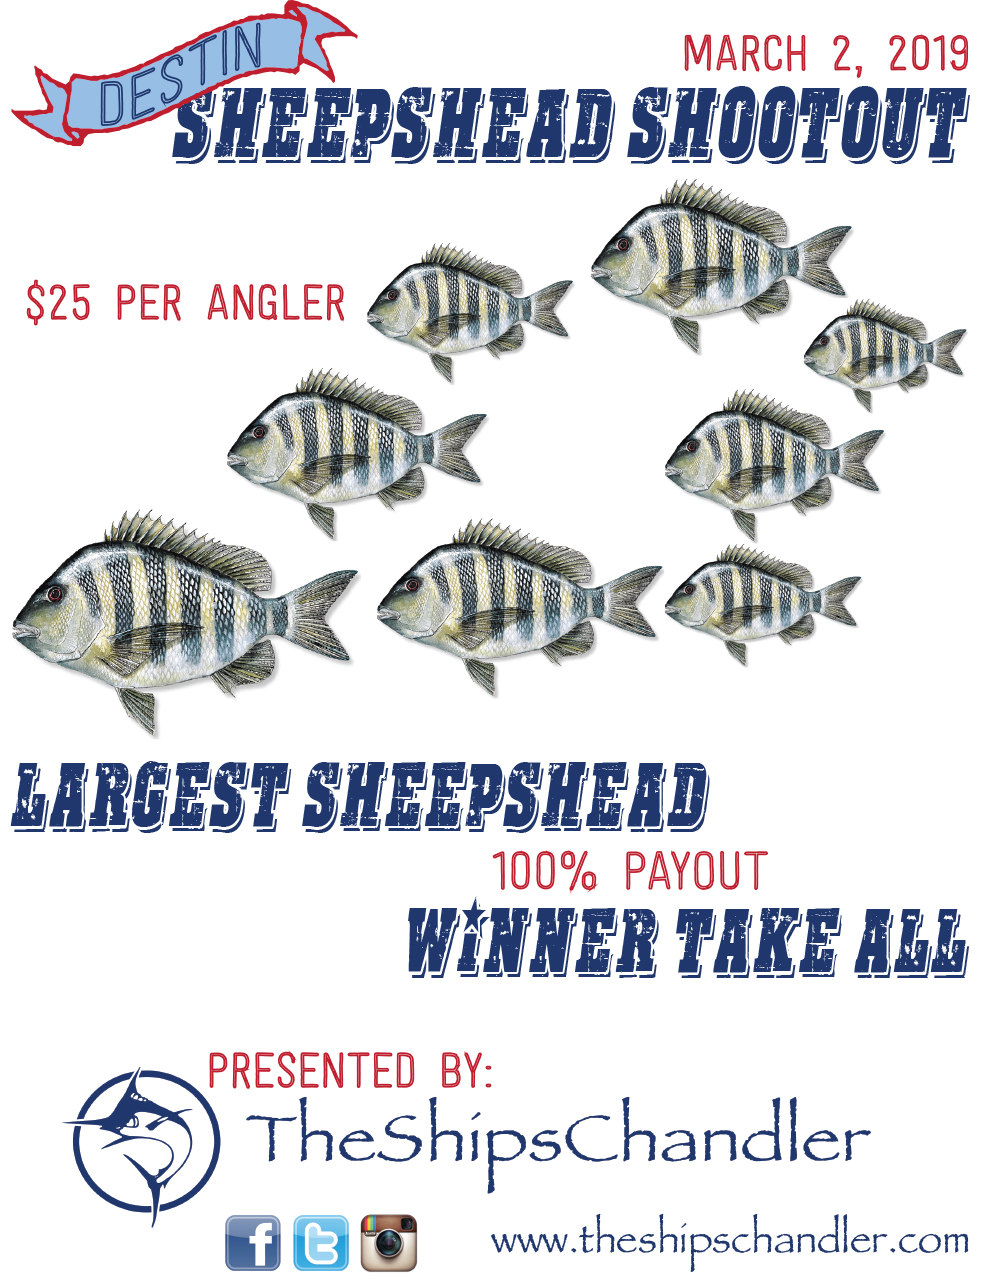 Sheepshead Shootout 2019 Poster - Sponsored by The Ships Chandler